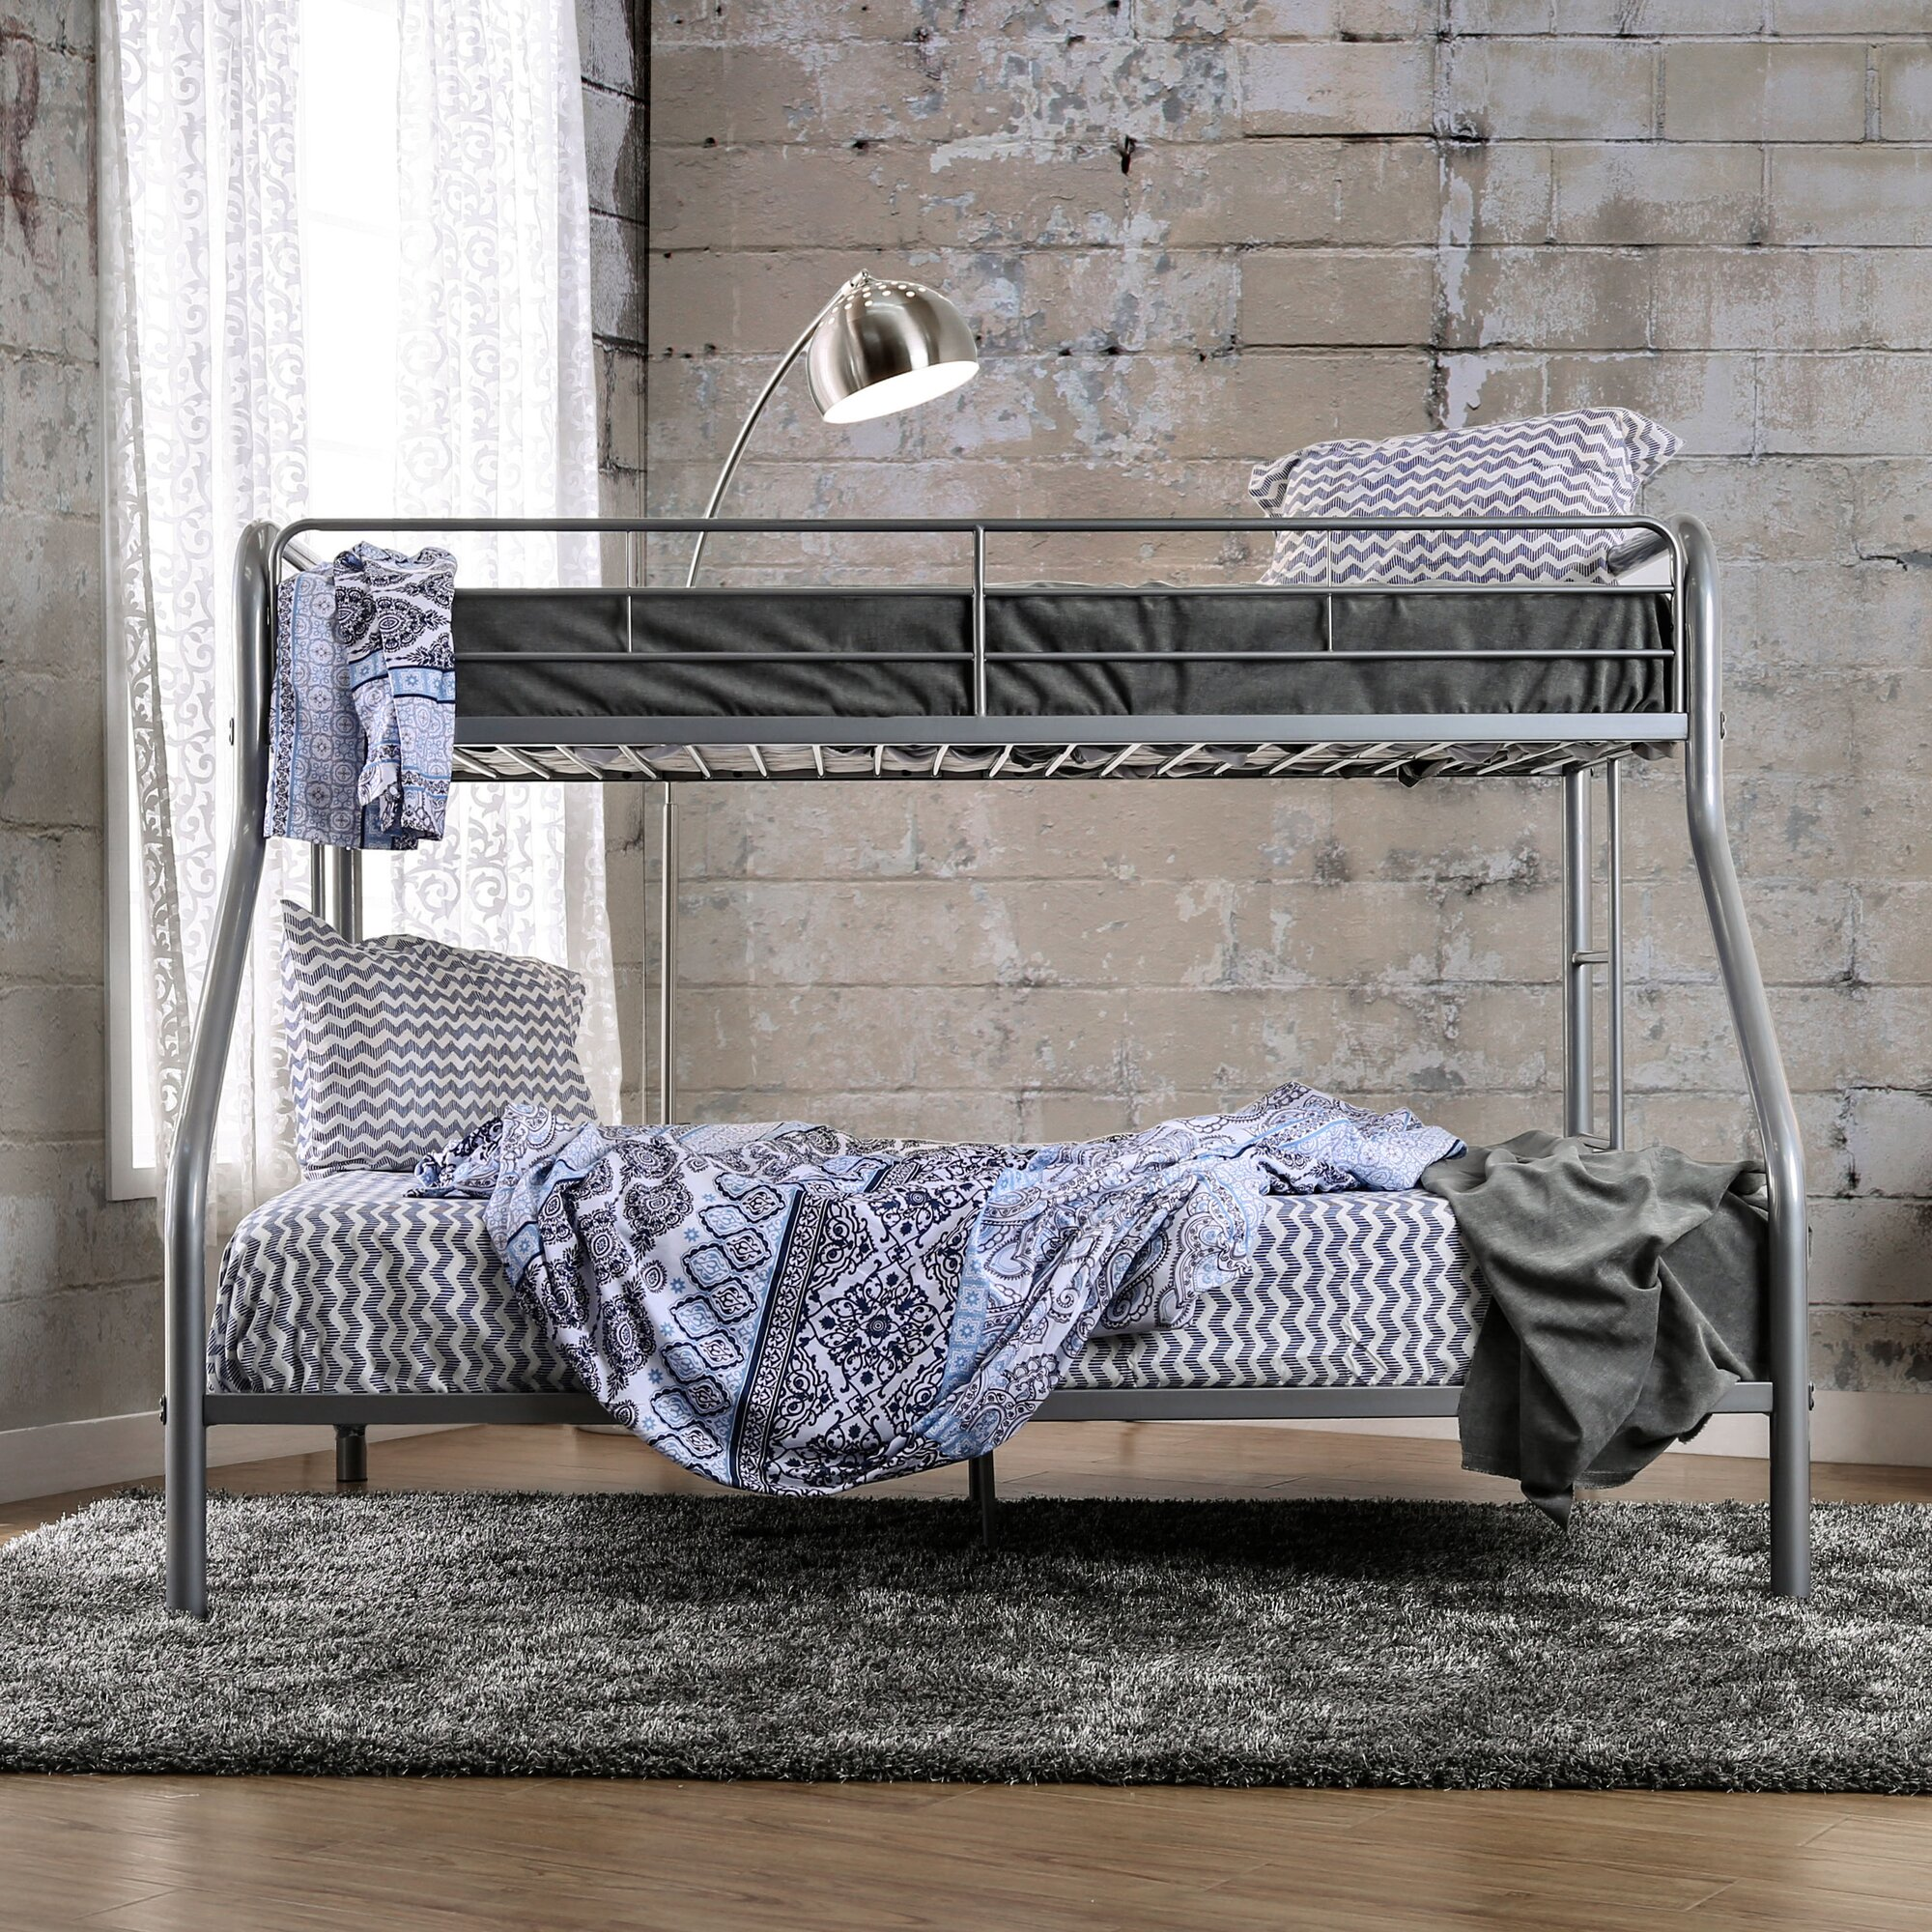 Queen Bunk Beds For Sale Queen Murphy Beds For Sale